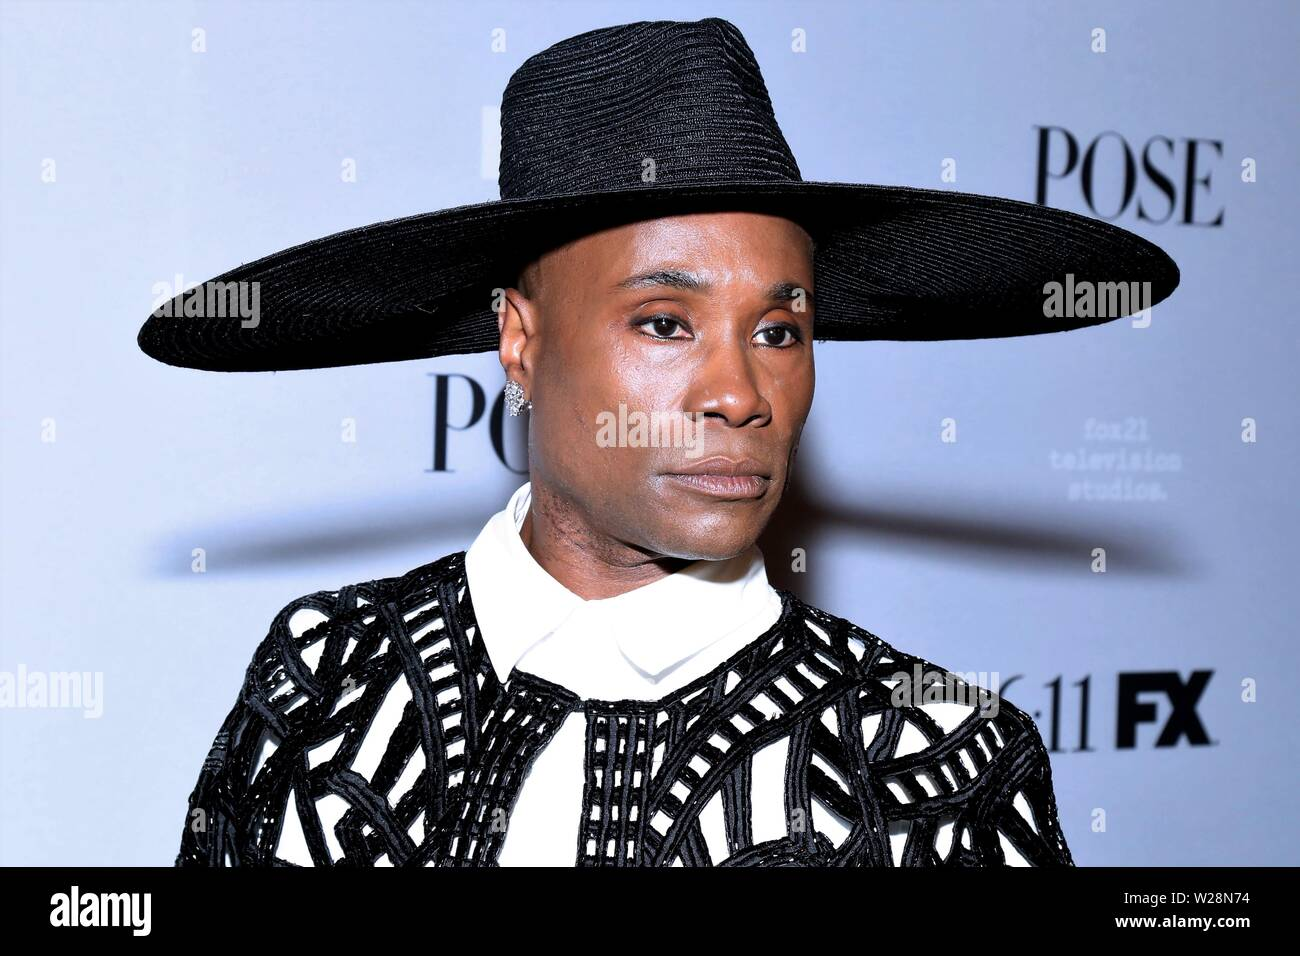 FX Networks Season 2 Premiere of Pose, held at the Paris Theatre - Arrivals. Featuring: Billy Porter Where: New York, New York, United States When: 06 Jun 2019 Credit: Joseph Marzullo/WENN.com Stock Photo